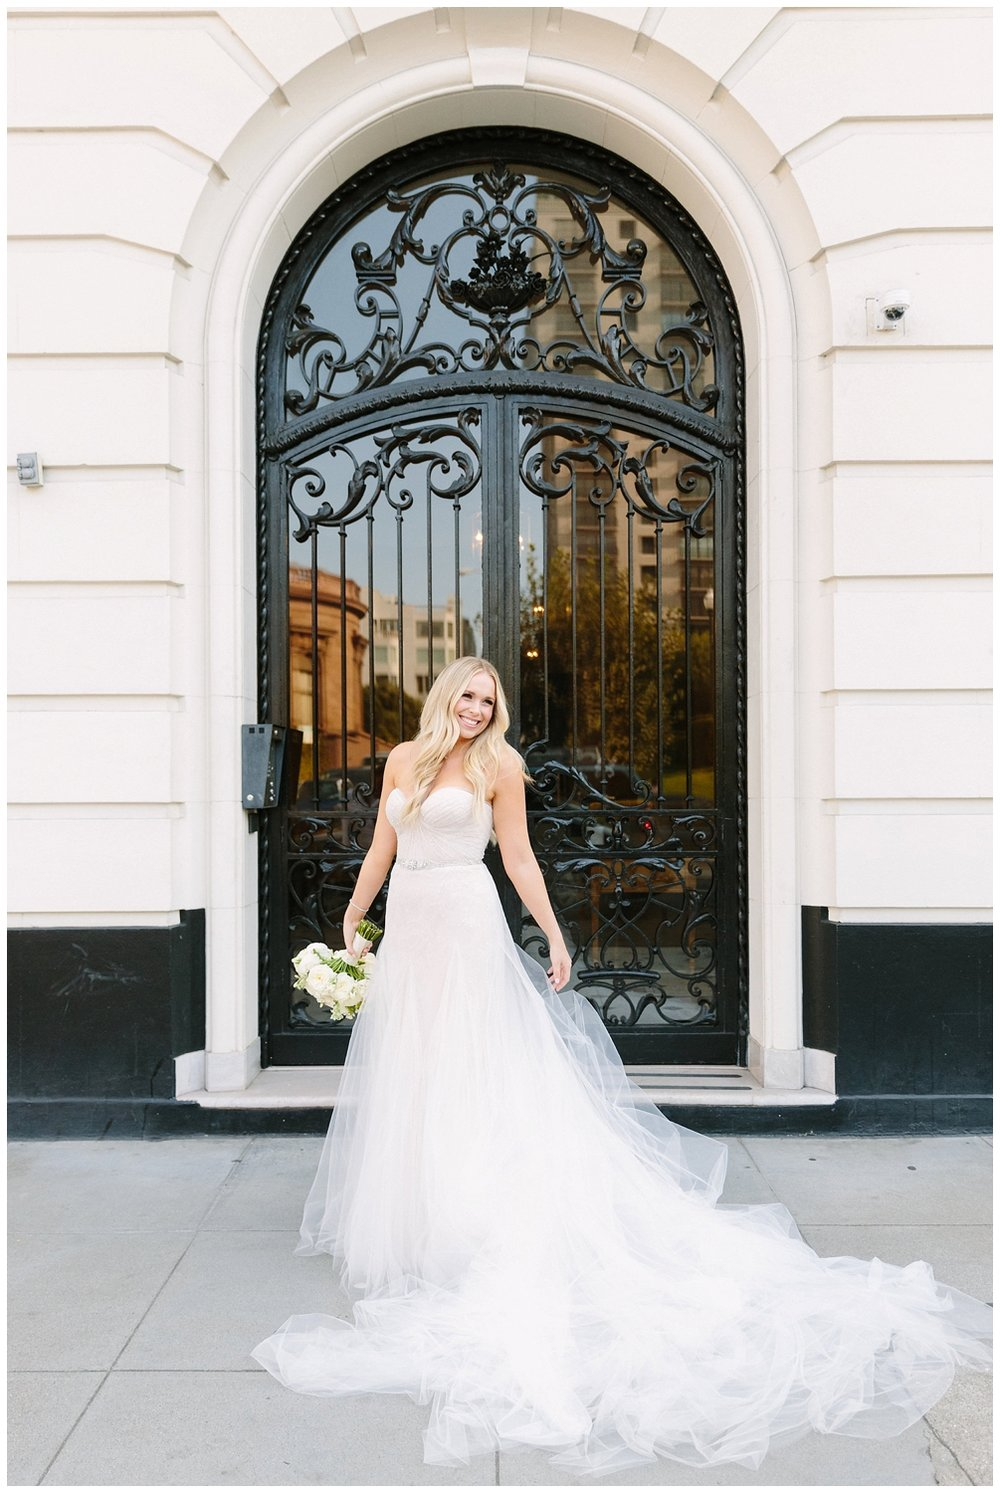 LCphoto-cg-wedding-preview-027_WEB.jpg